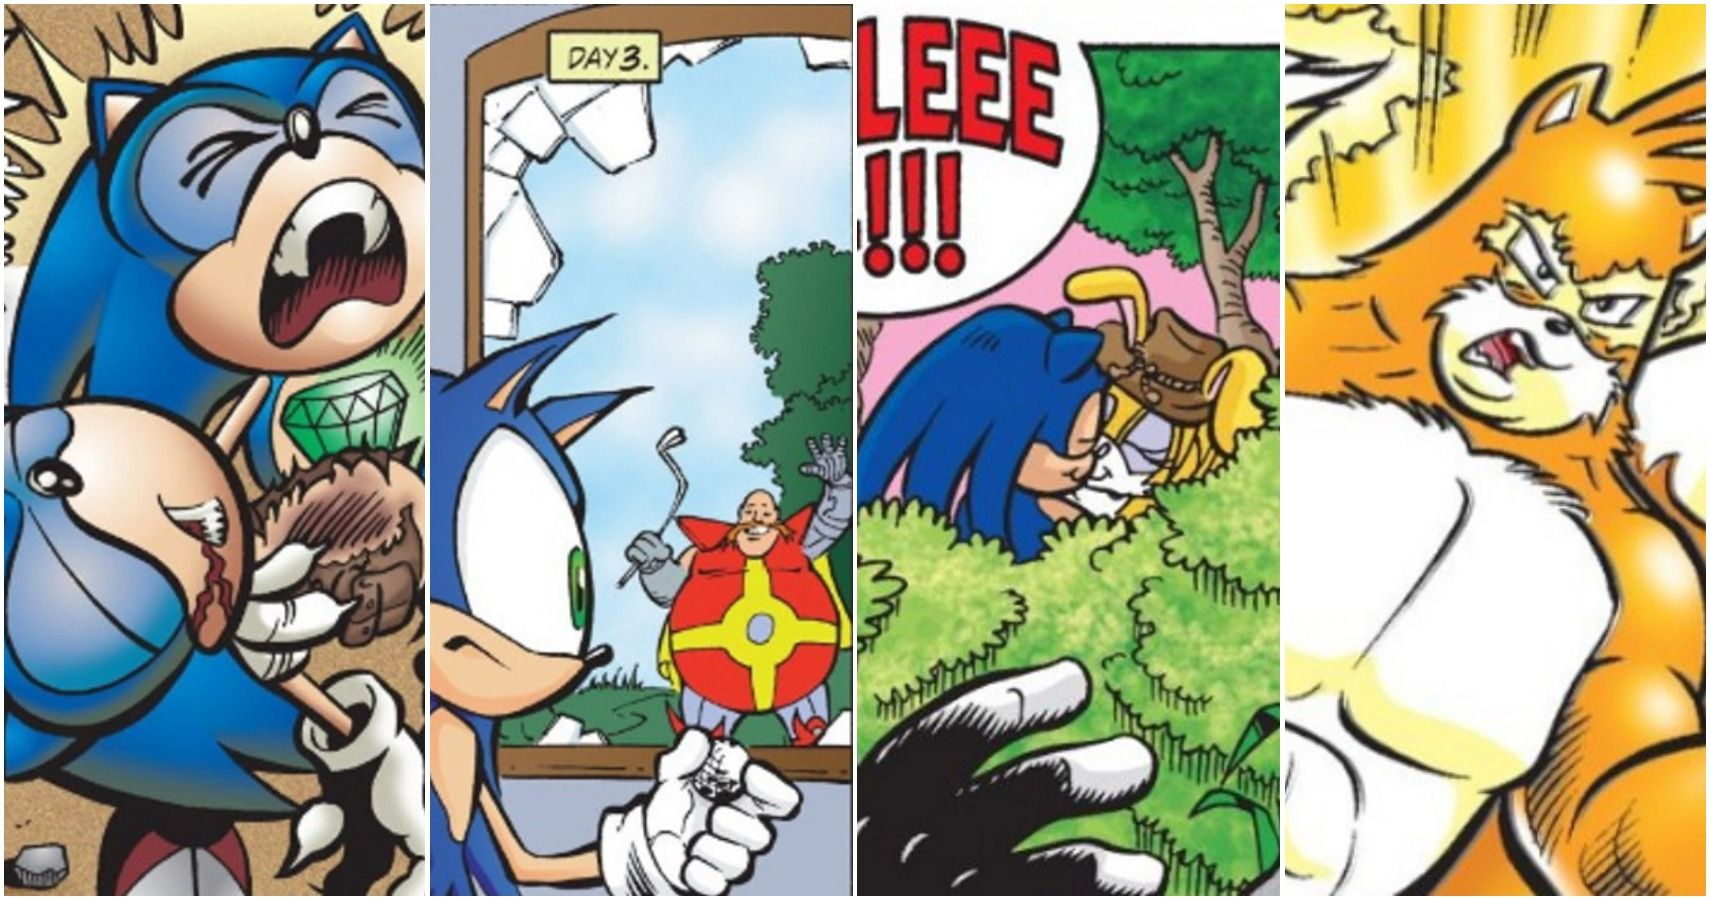 Sonic The Hedgehog The 10 Weirdest Moments In His Comics That Fans Need To Know About